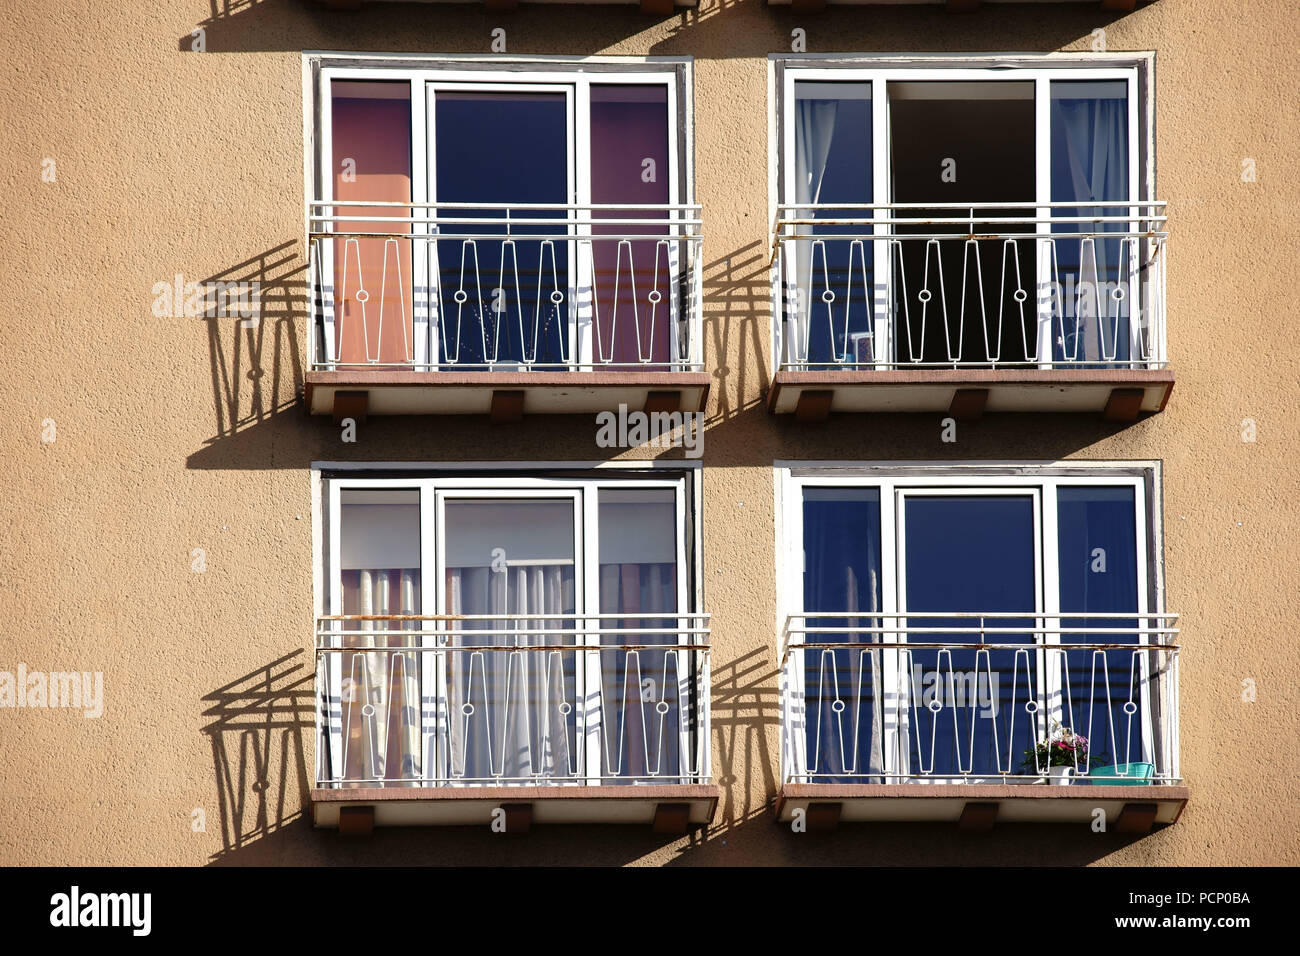 The railings of small balconies of an apartment building casting shadows. Stock Photo